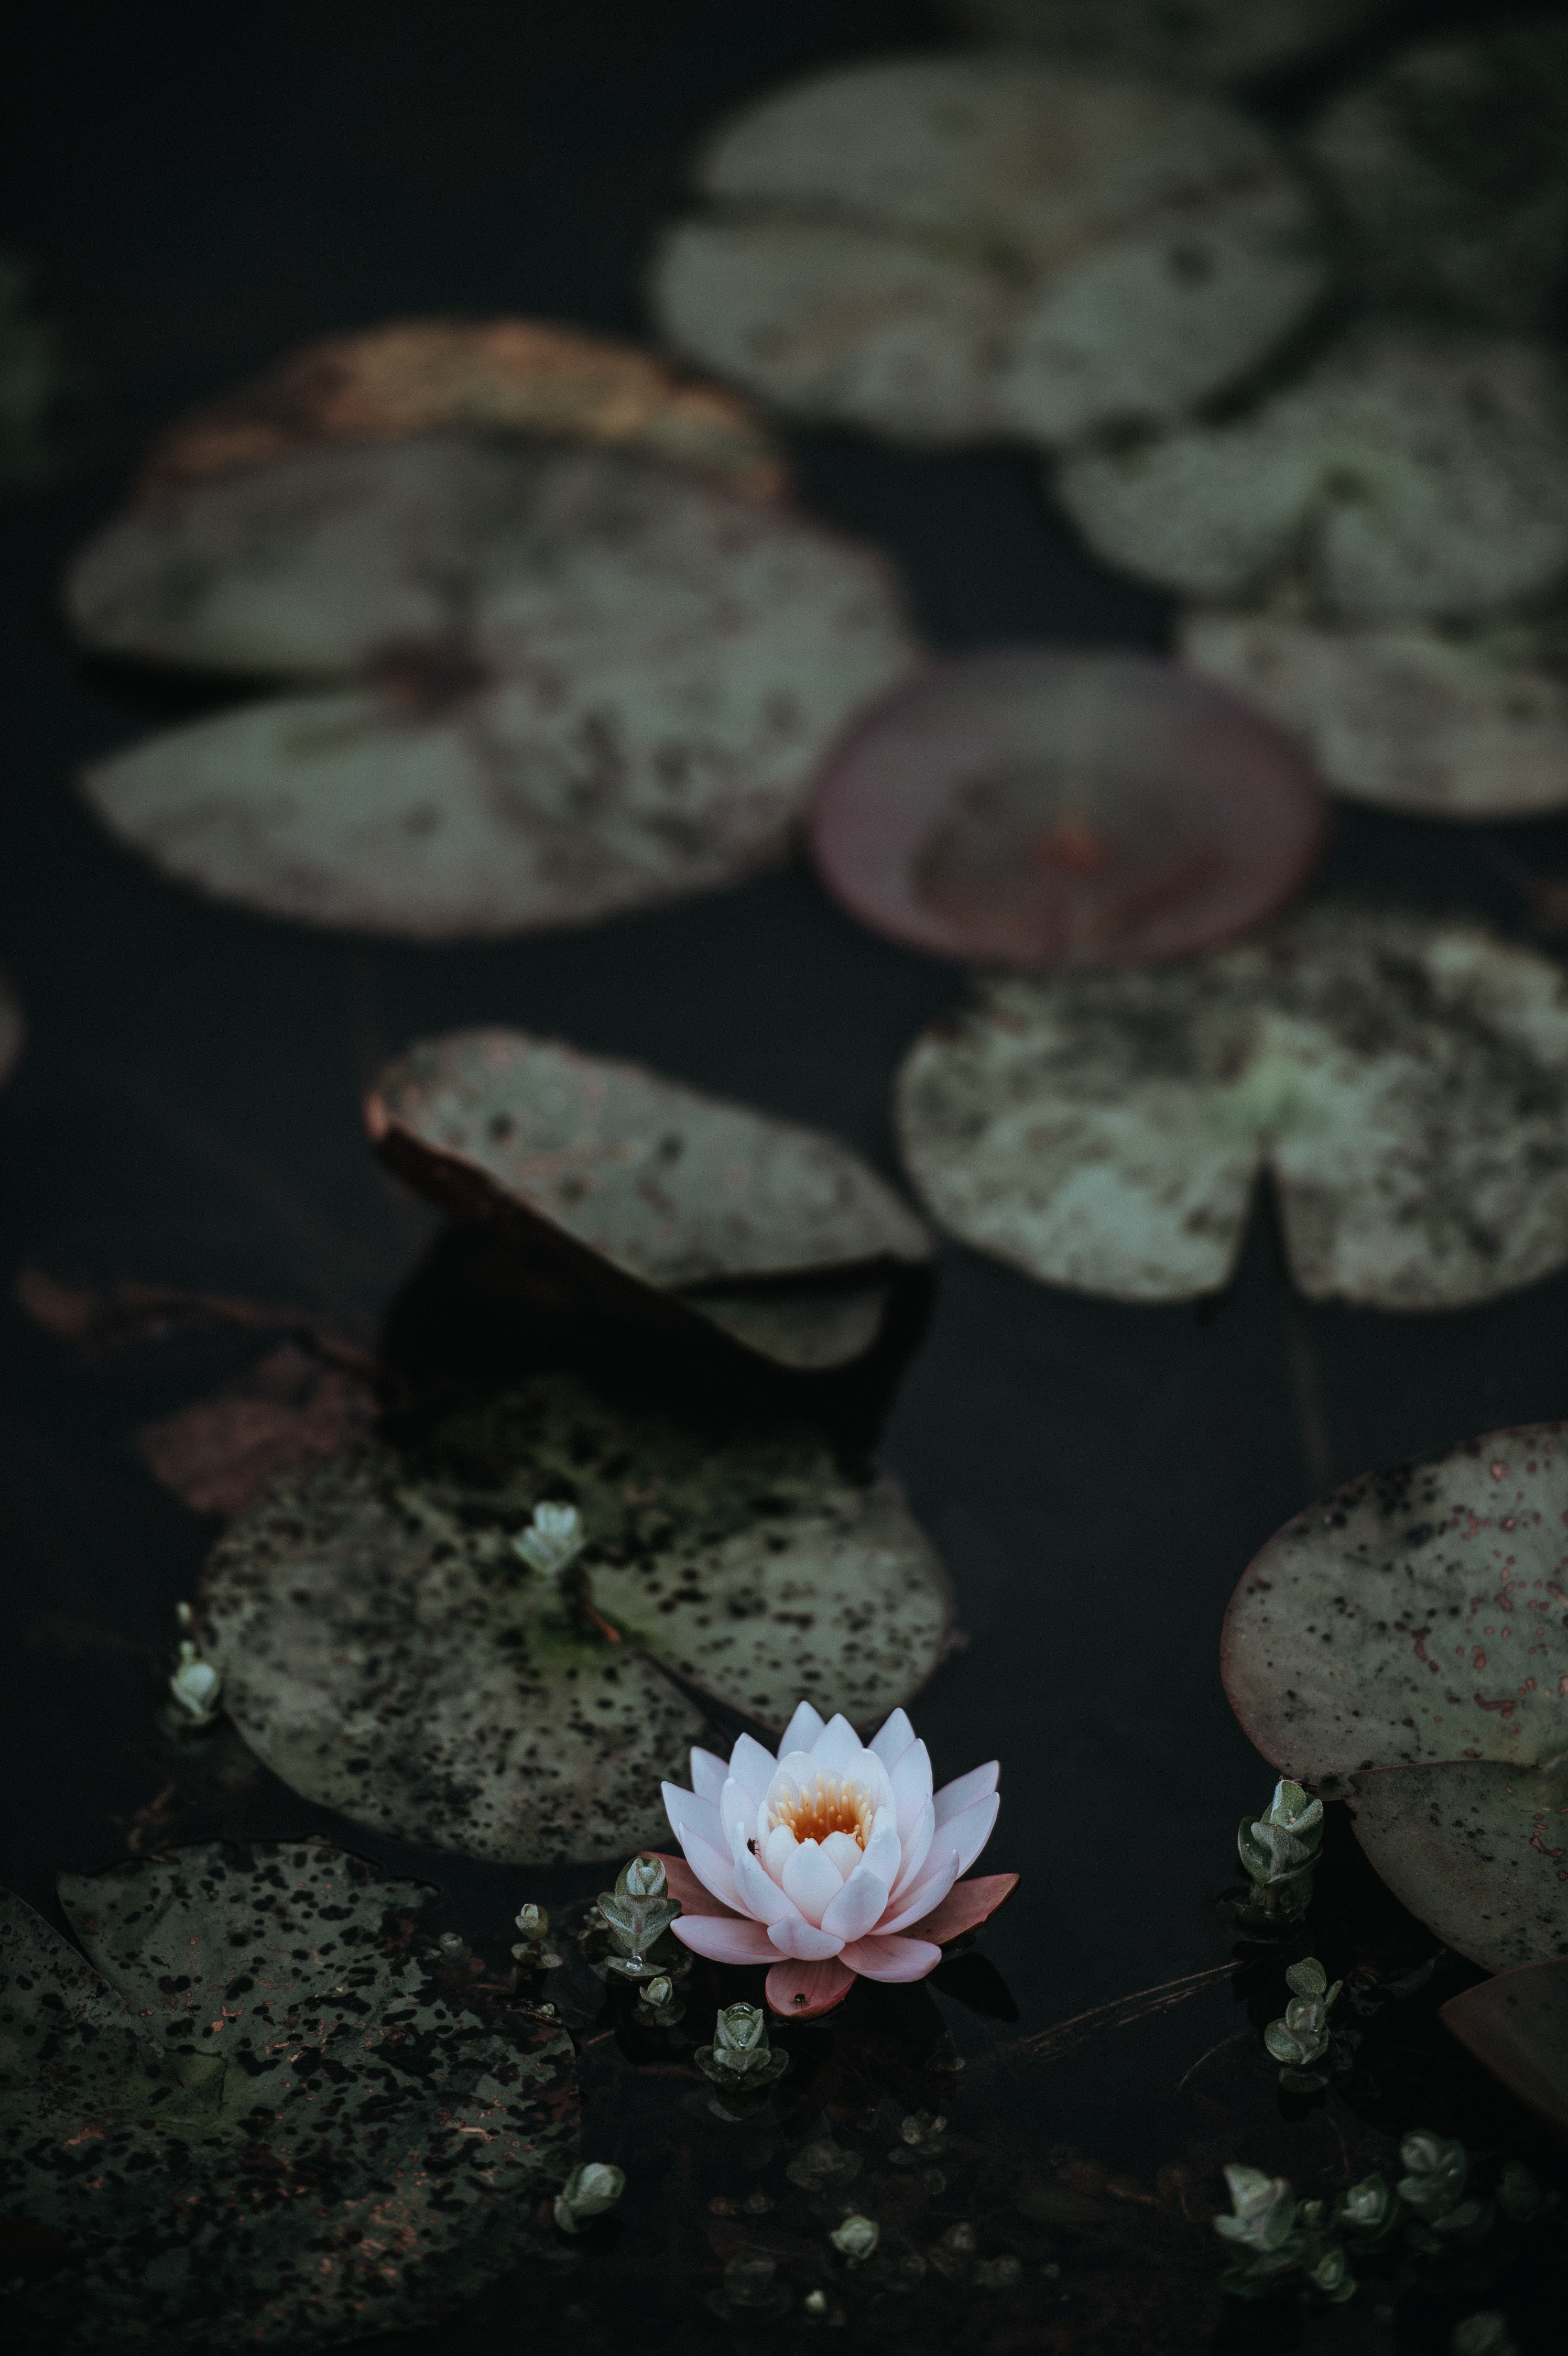 A single white water lily next to lily pads on the surface of water